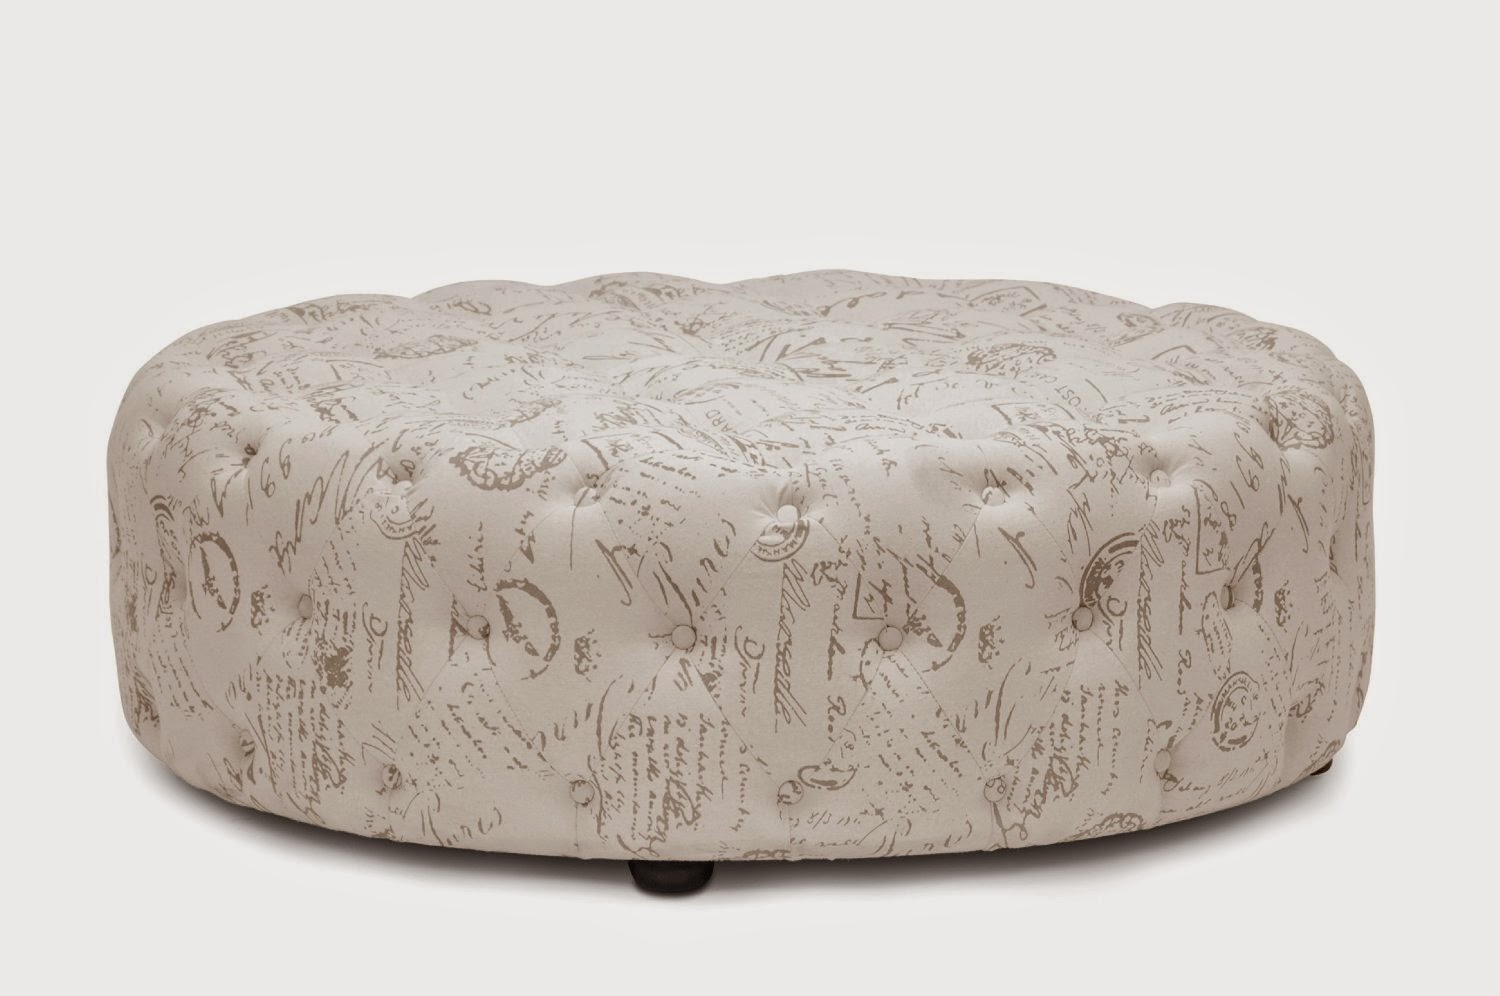 Baxton Beige round tufted ottoman coffee table - Round Ottoman Coffee Table: Round Tufted Ottoman Coffee Table